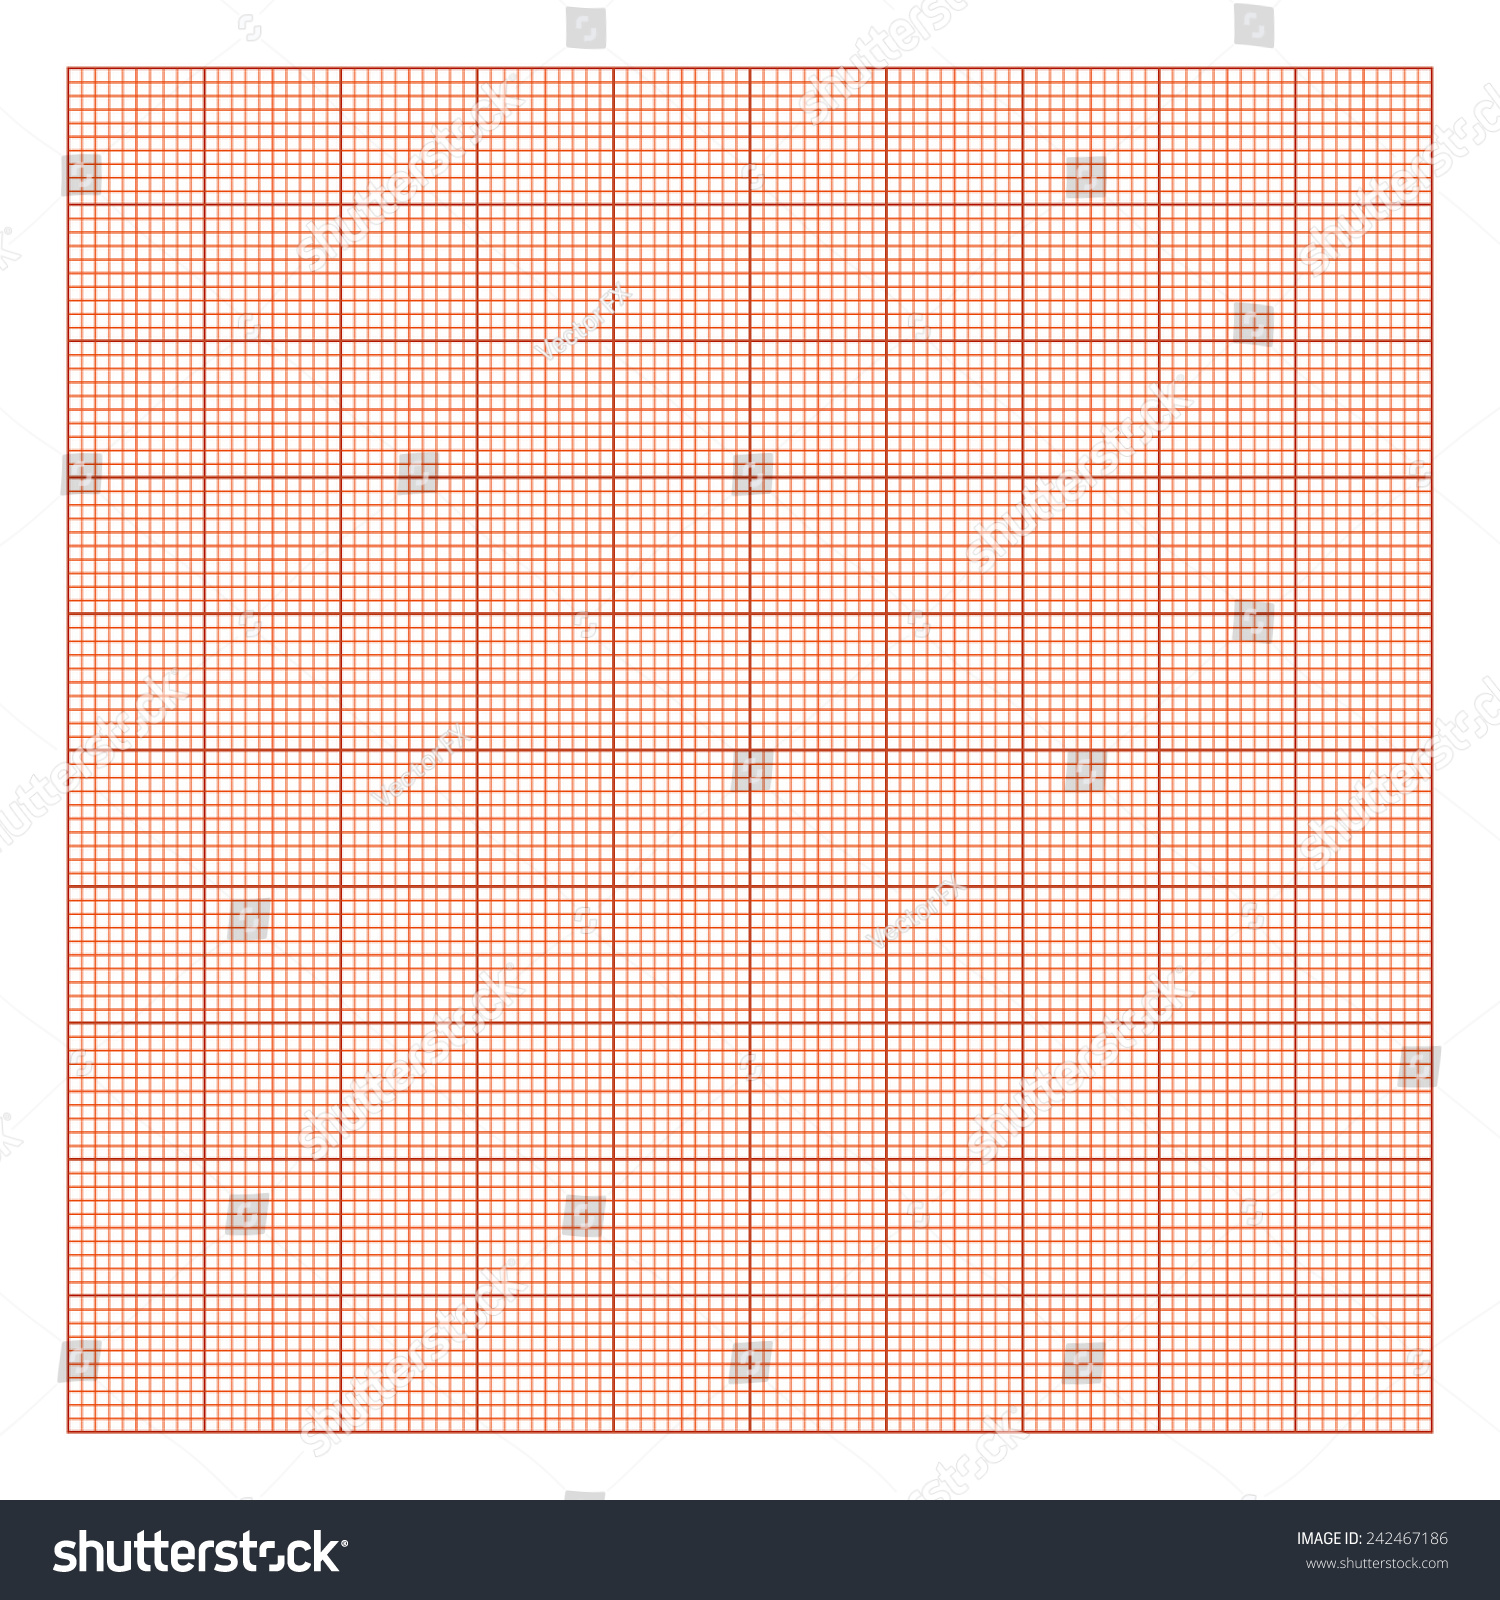 The Graph Paper   Template Of Drawing Paper 10x10 Orange Color For The  Construction Drawings